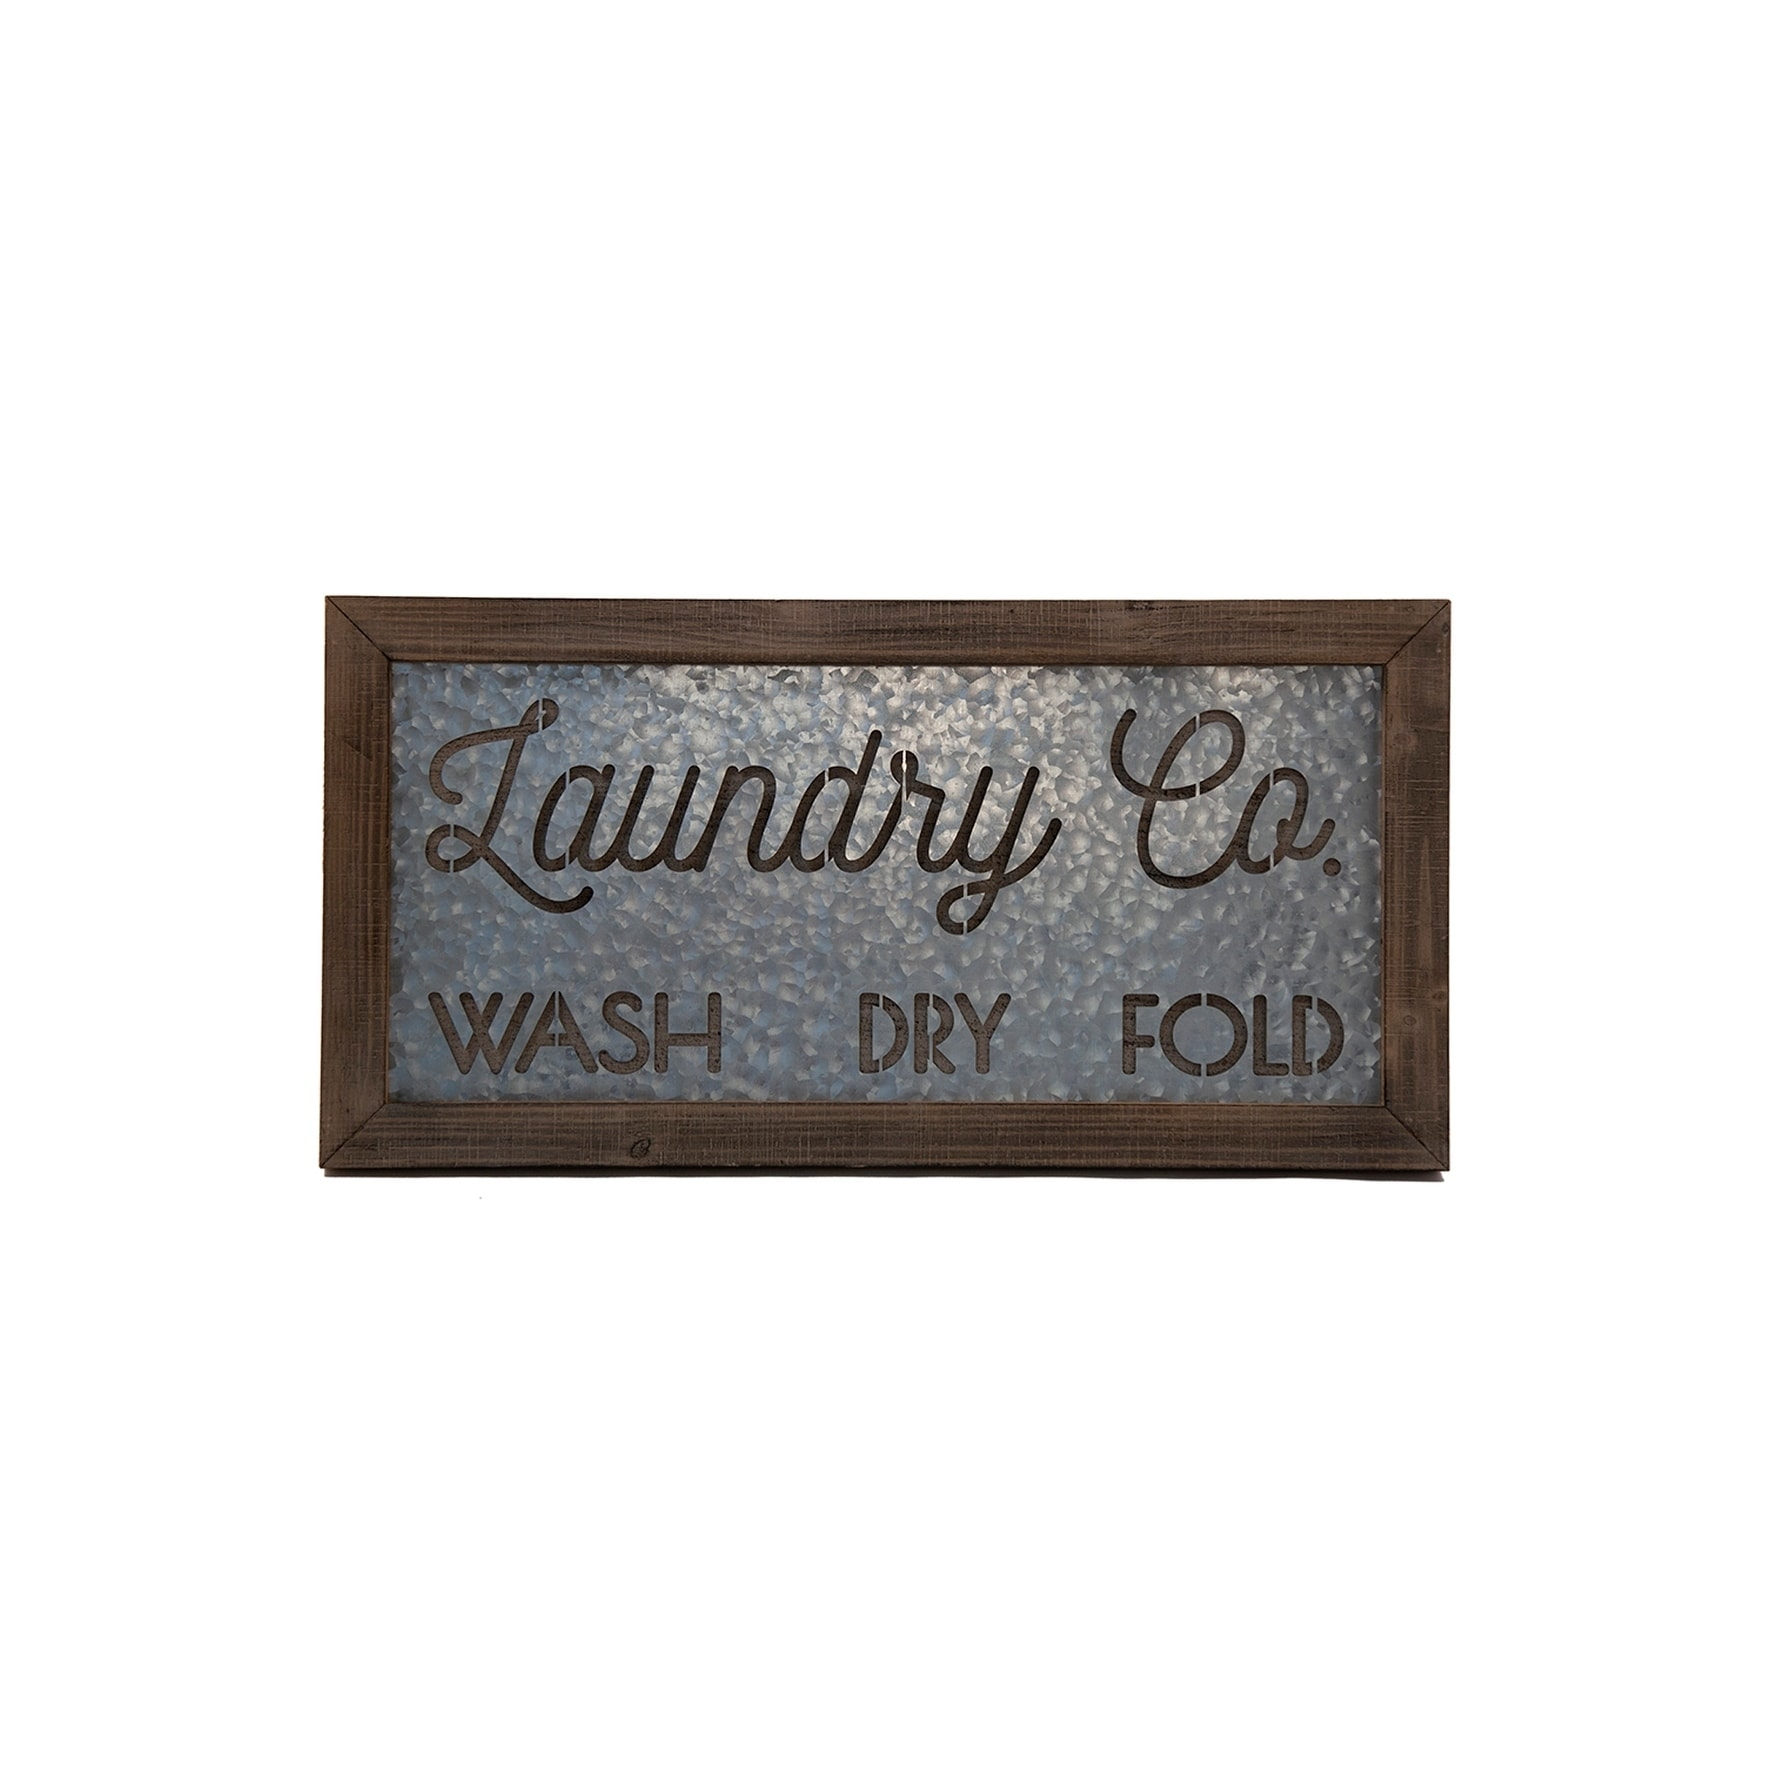 Designstyles Laundry Room Laundry Co Wash Dry Fold Decorative Door And Wall Sign